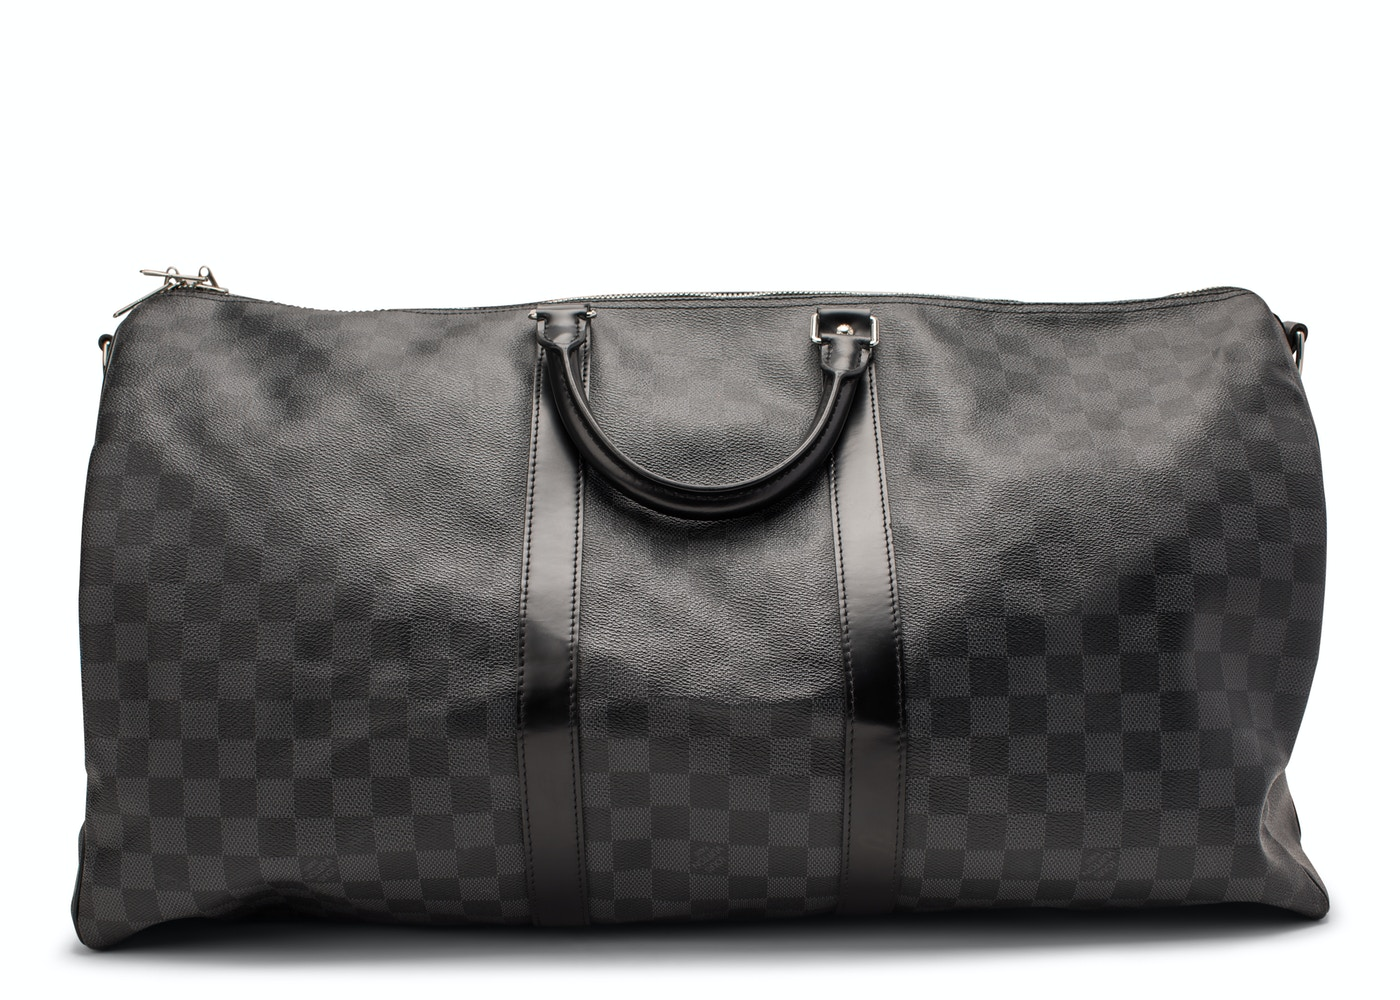 Louis Vuitton Keepall Bandouliere Damier Graphite 55 Black Gray 87aa28c913a57